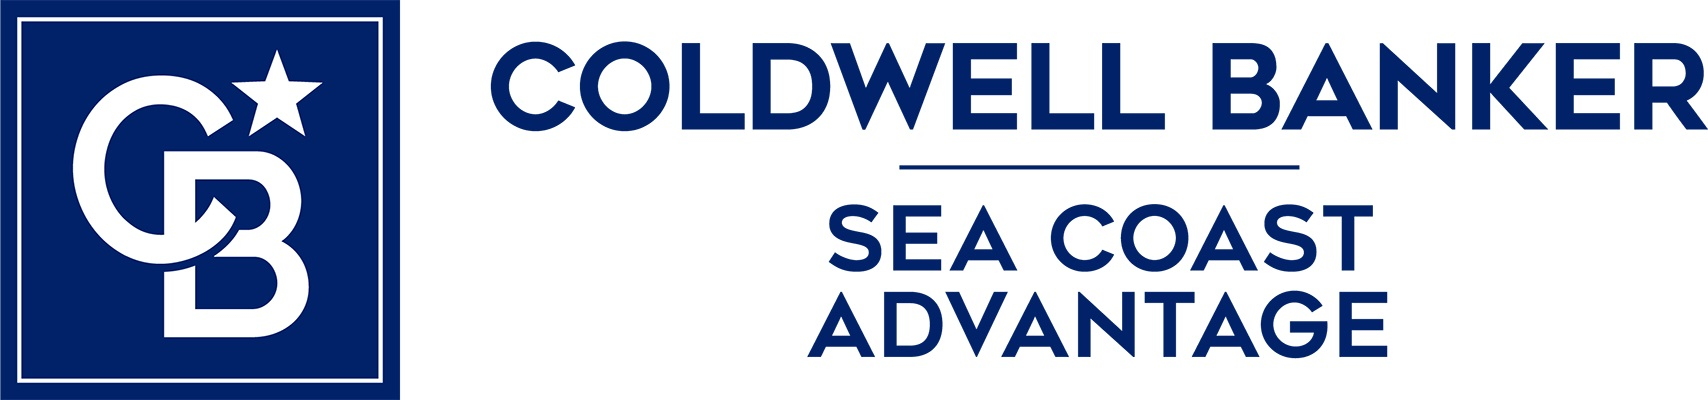 Shellie Smith - Coldwell Banker Sea Coast Advantage Realty